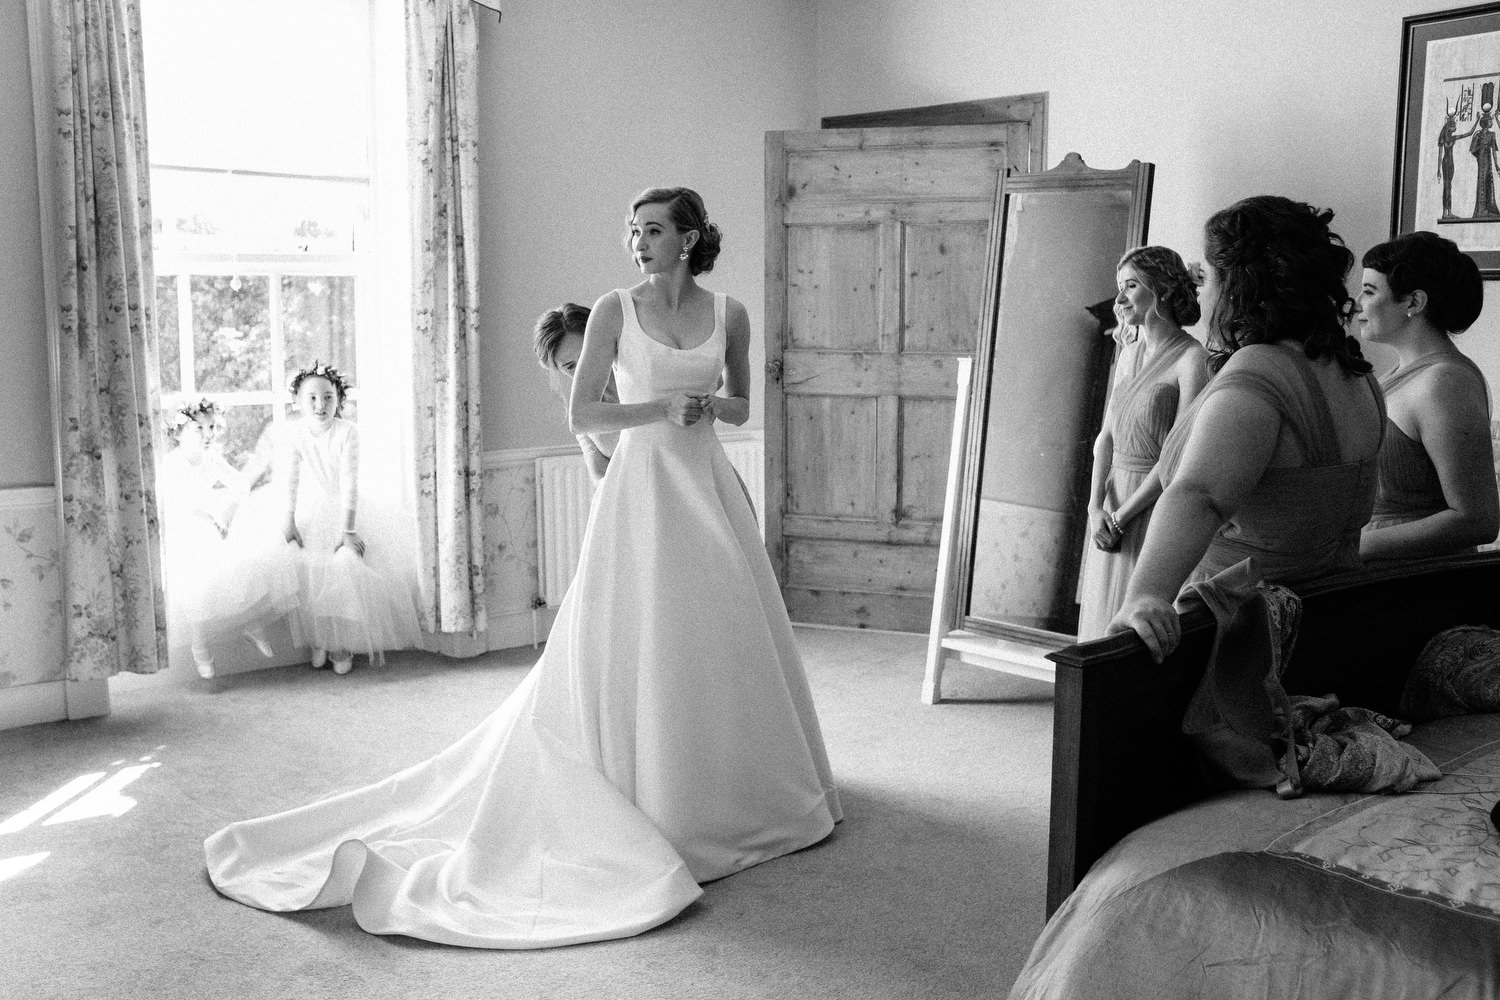 000000000000000000000081_bride_style_preparation_vintage_Hair_dress_photography_david_mcclelland_ireland_makeup_castle_hollywood_kinnity_wedding_photographer_fujifilm